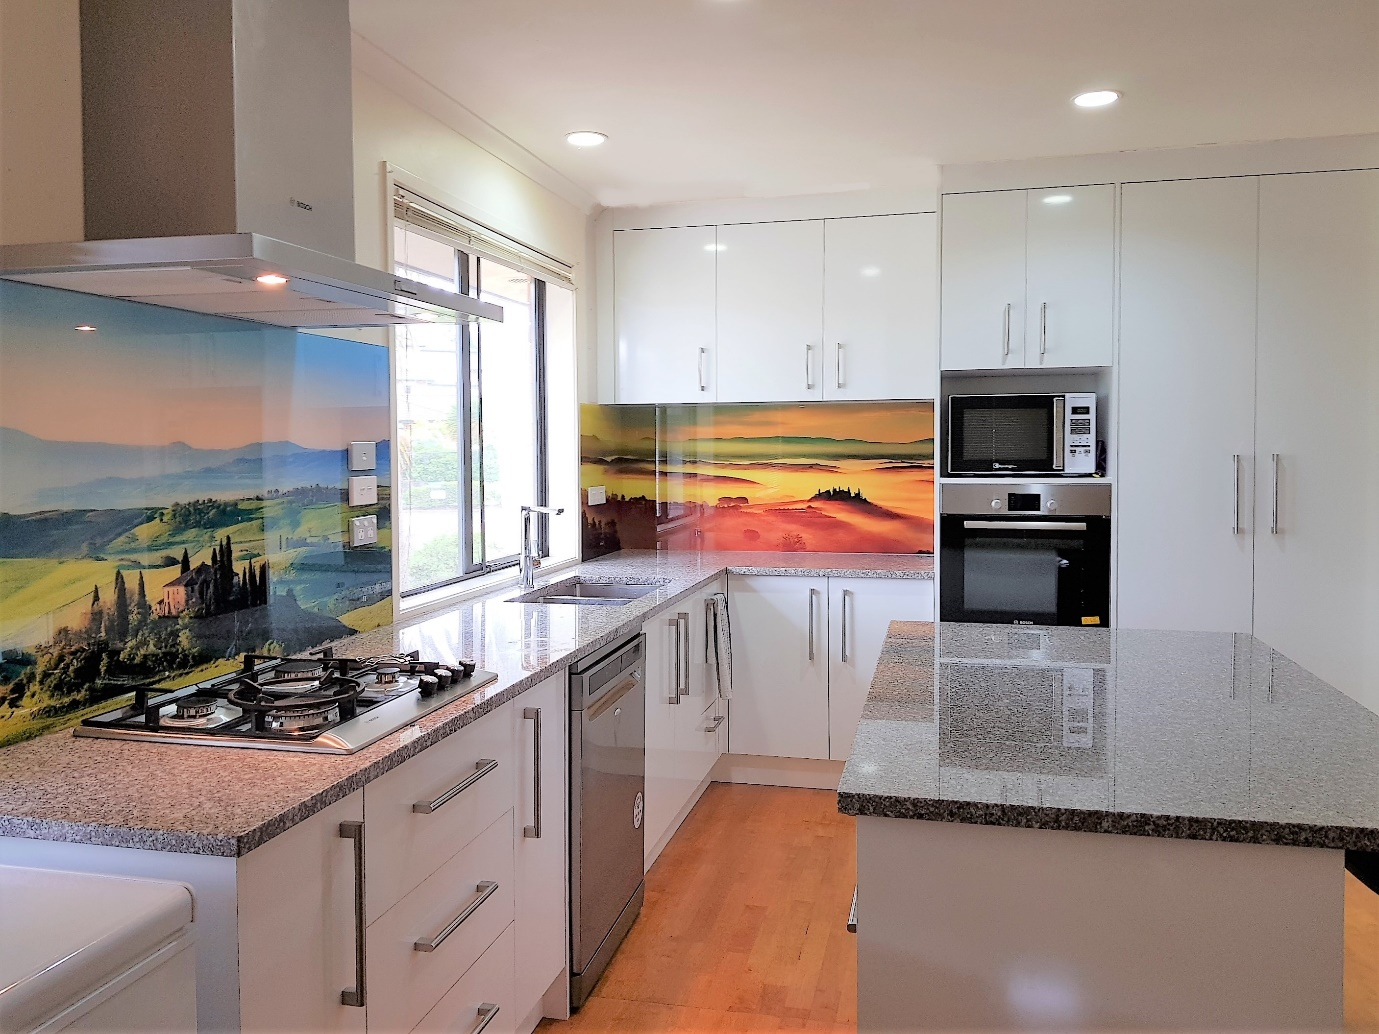 How to select the right kitchen